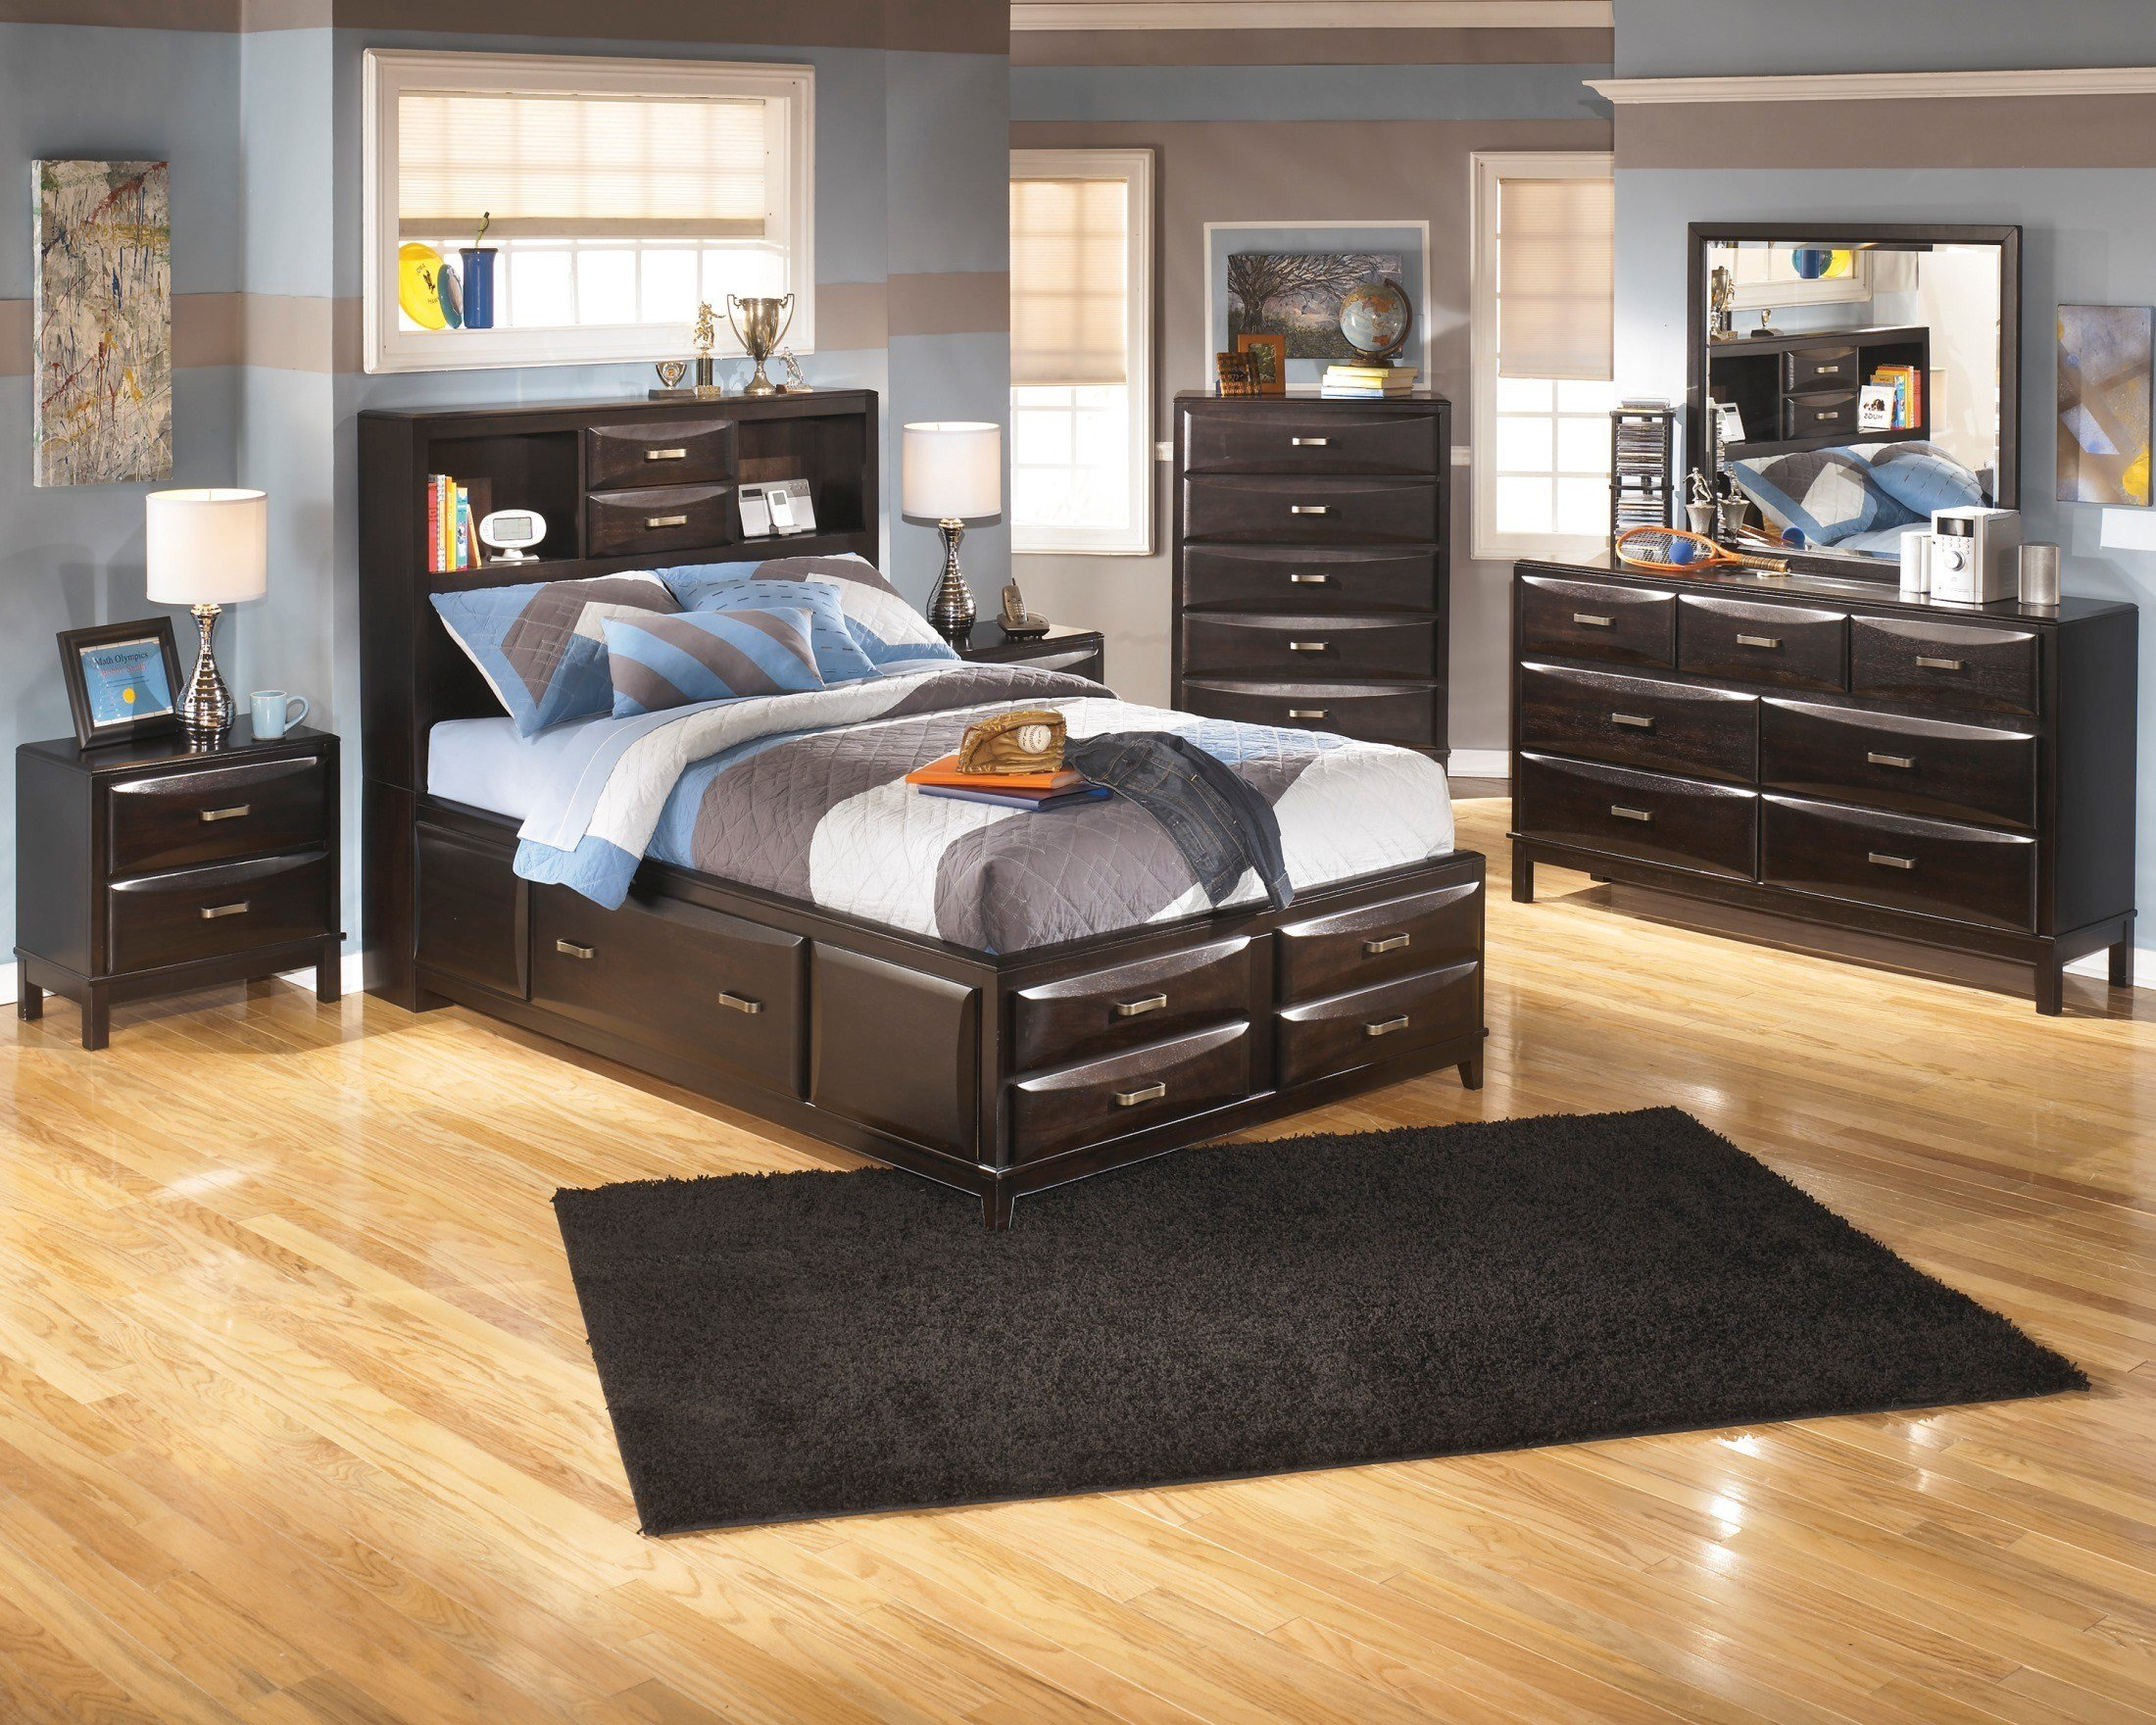 Best Kira Youth Storage Bedroom Set From Ashley B473 With Pictures